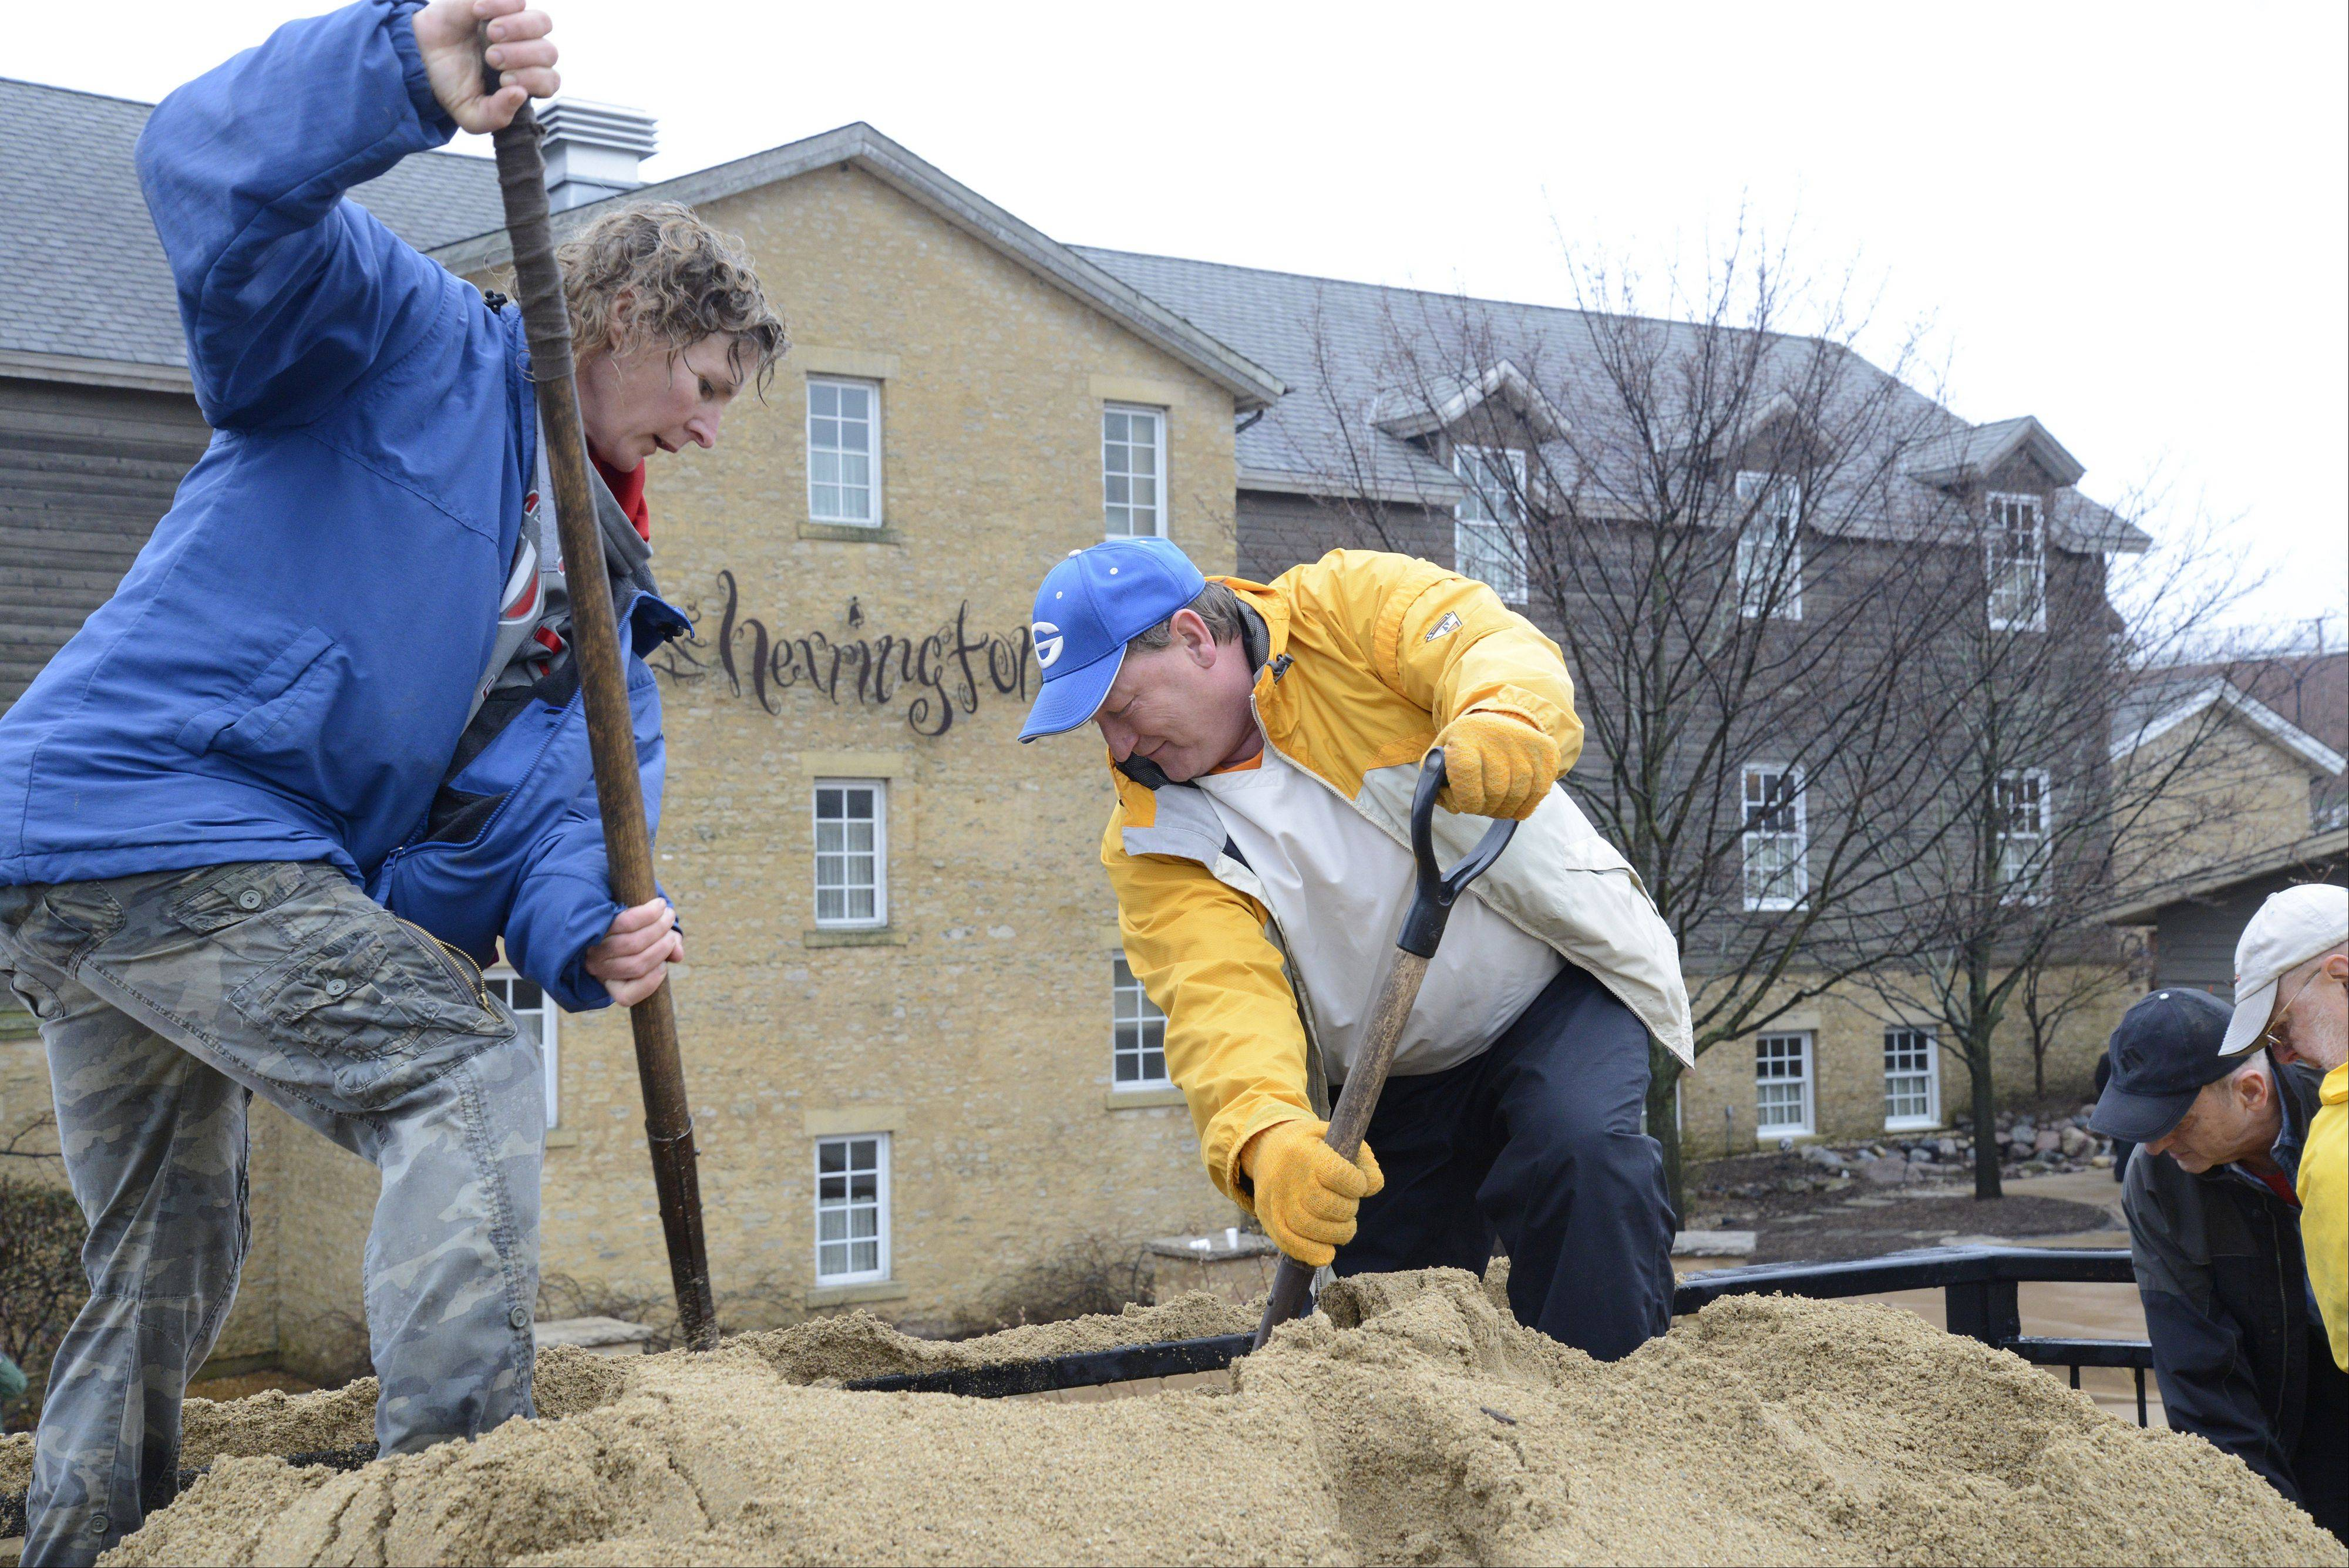 Volunteers Cathy Blaeser of Batavia and Dave Weede of Geneva shovel sand Thursday from the State Street Bridge down to sandbaggers below by the Herrington Inn in Geneva. Paul Ruby, the owner of the Herrington Inn, put out the call for help early in the day and people came by the dozens to help.